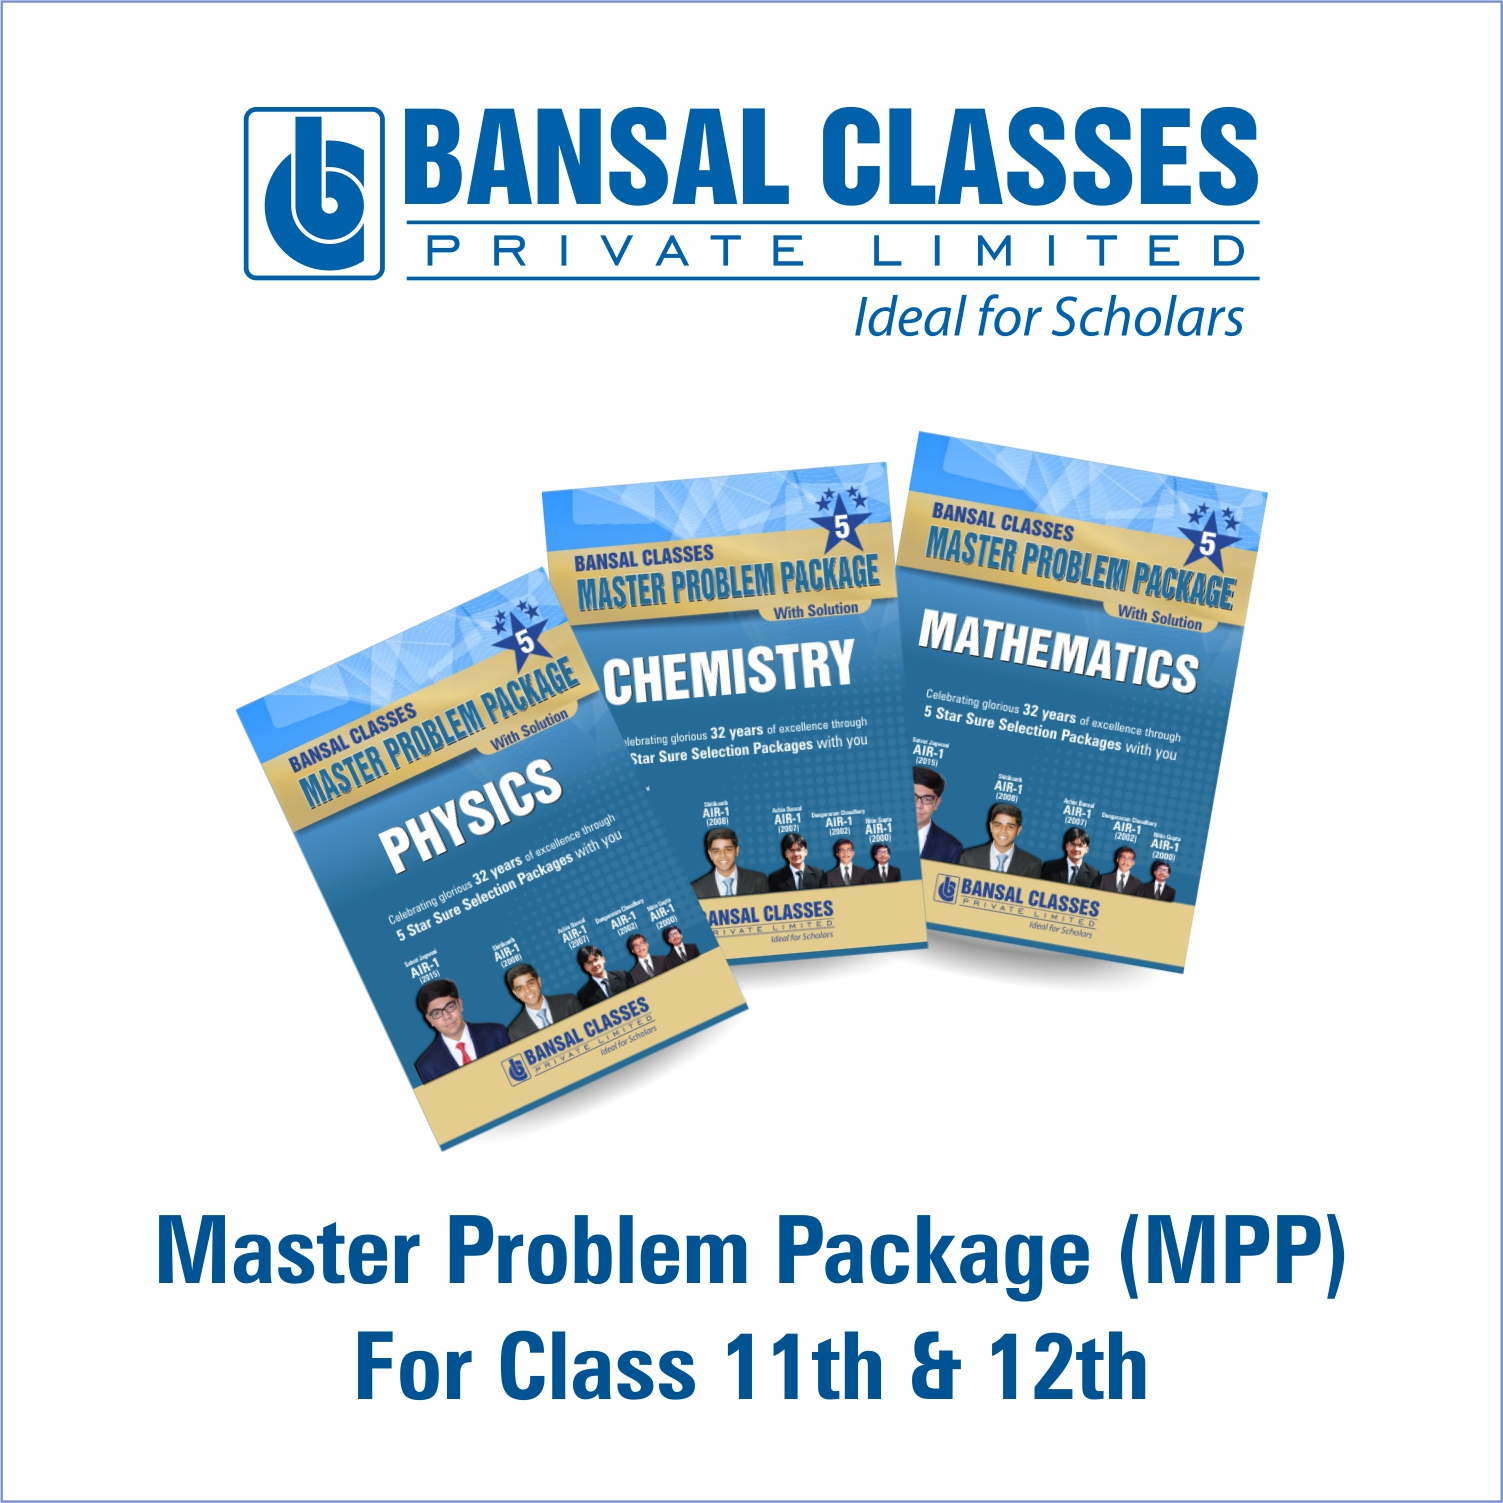 2000+ Master Problems of Phy, Chem, Maths based on IIT-JEE